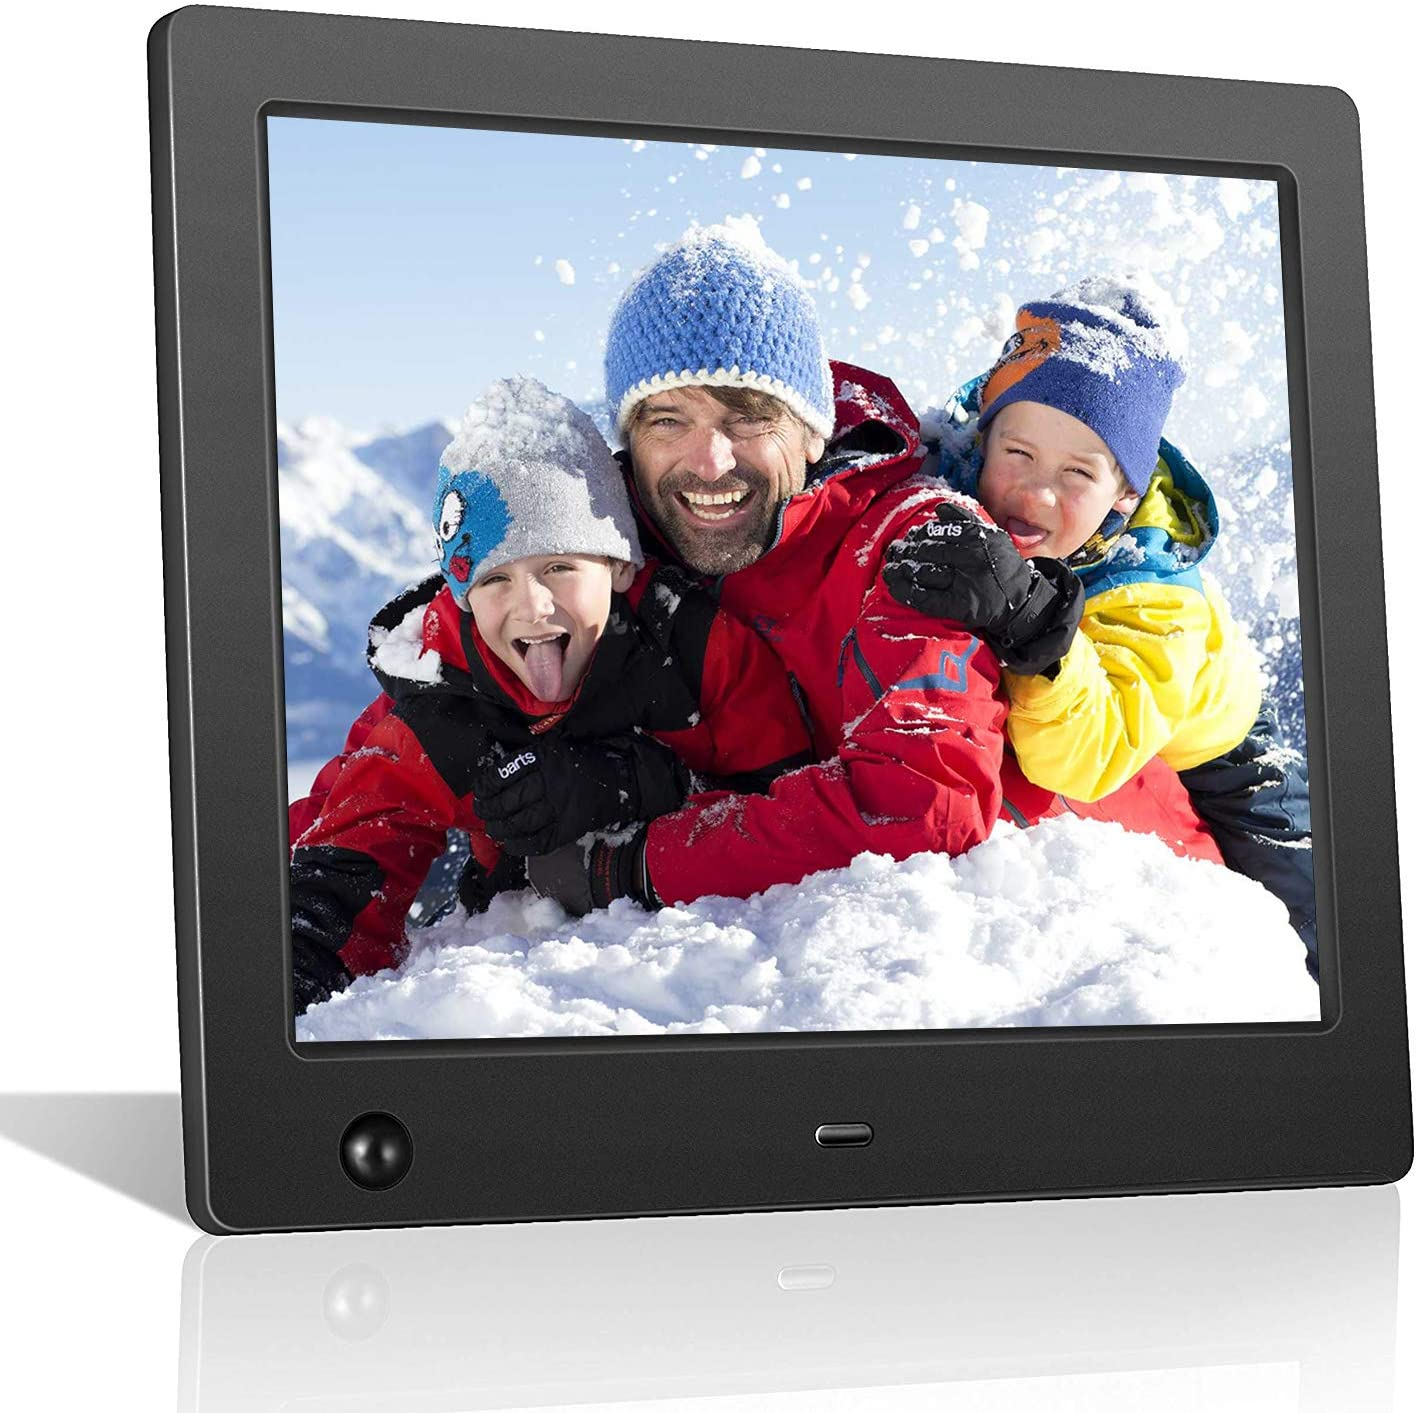 Digital Picture Frame 8 inch, Digital Photo Frame Video Player with Motion Sensor Smart Electronics Picture Frame High Resolution 1024x768 IPS LCD/1080P 720P /Stereo/MP3/Calendar/Time/Remote Control